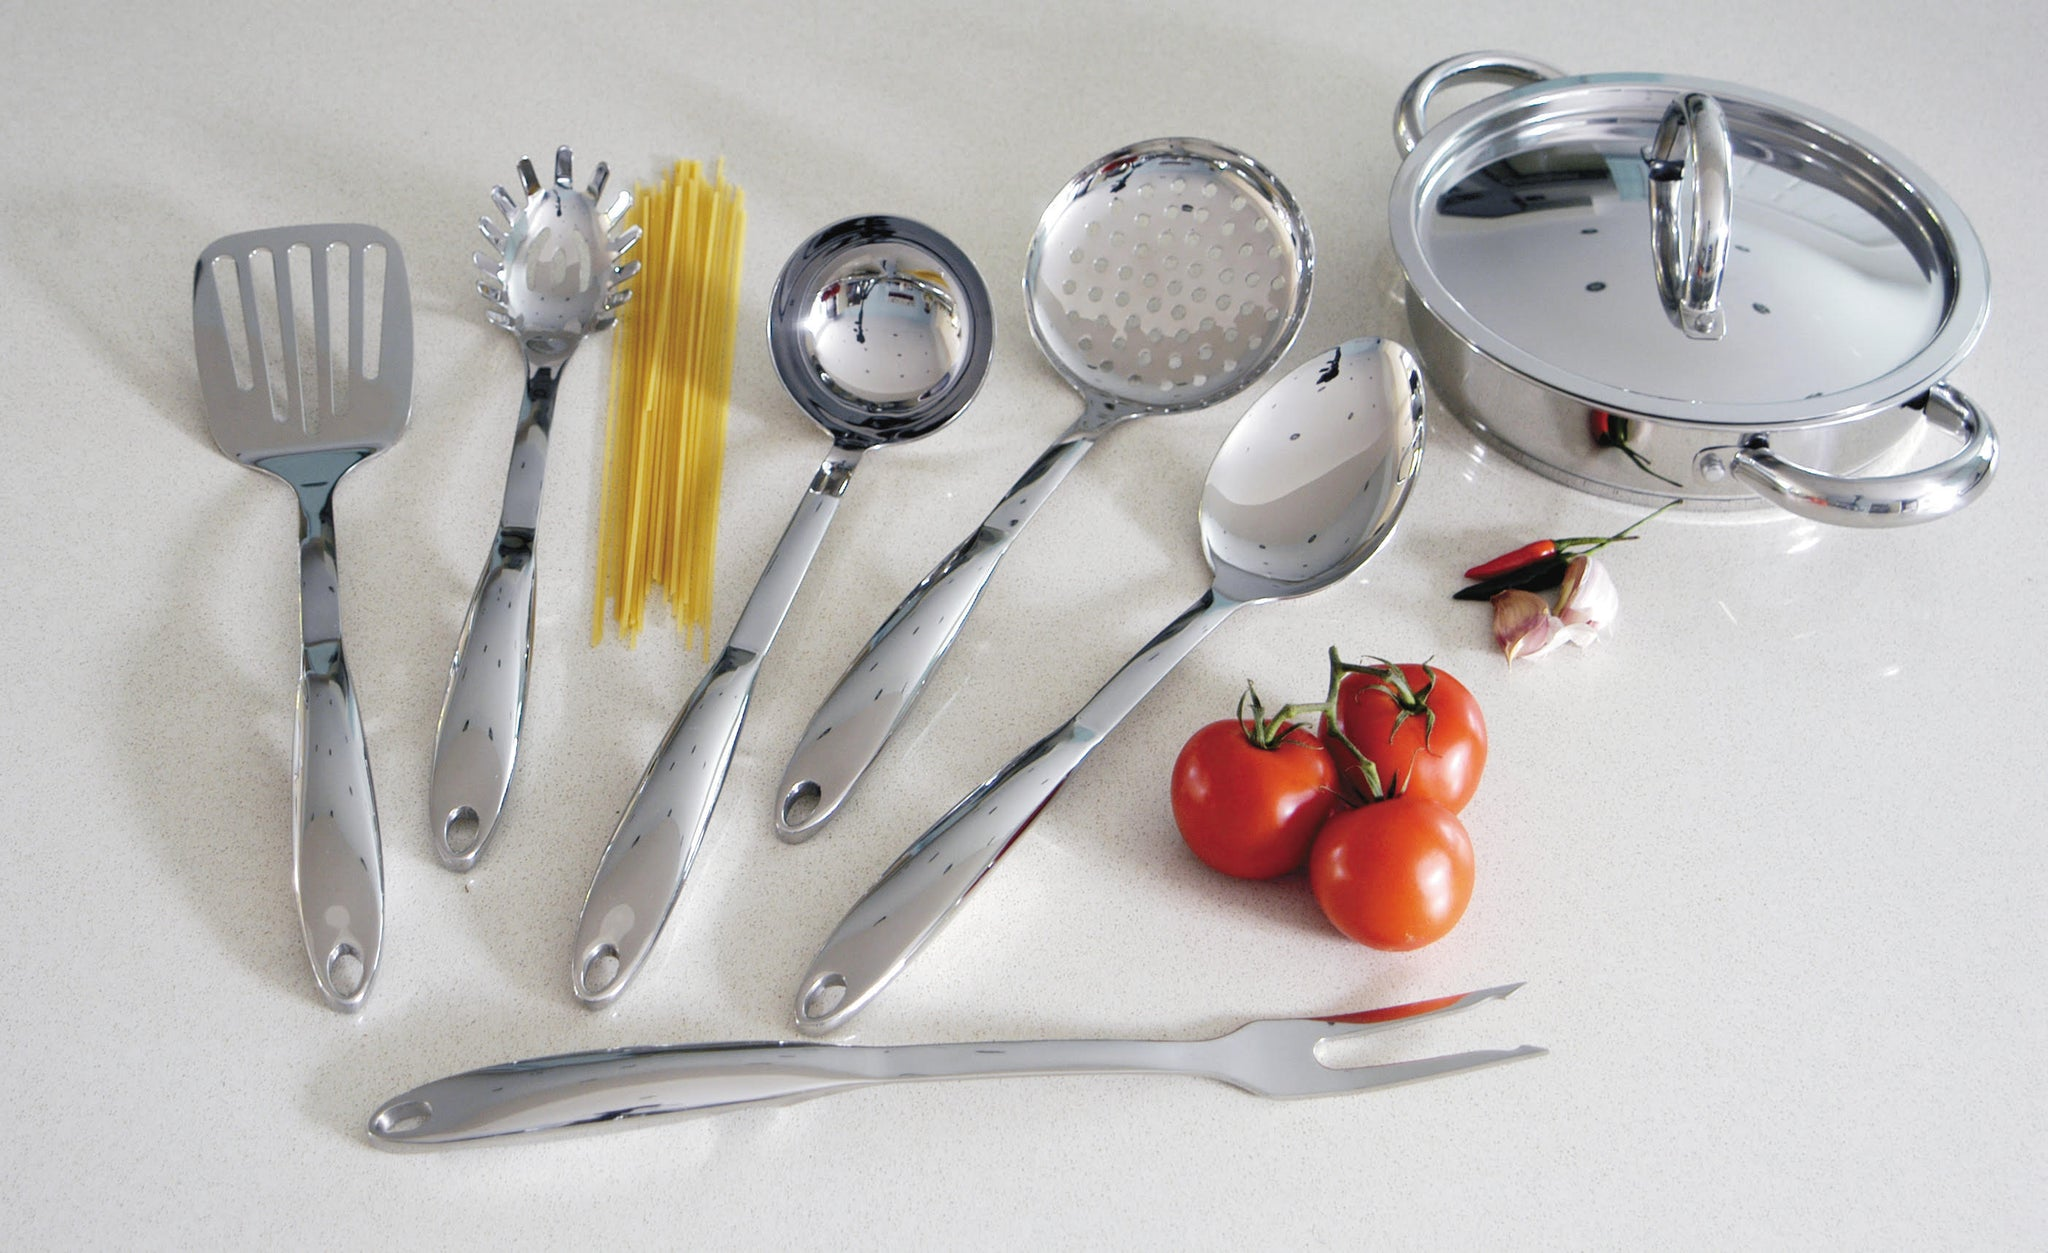 6-Piece Specialty Stainless Steel Utensil Set